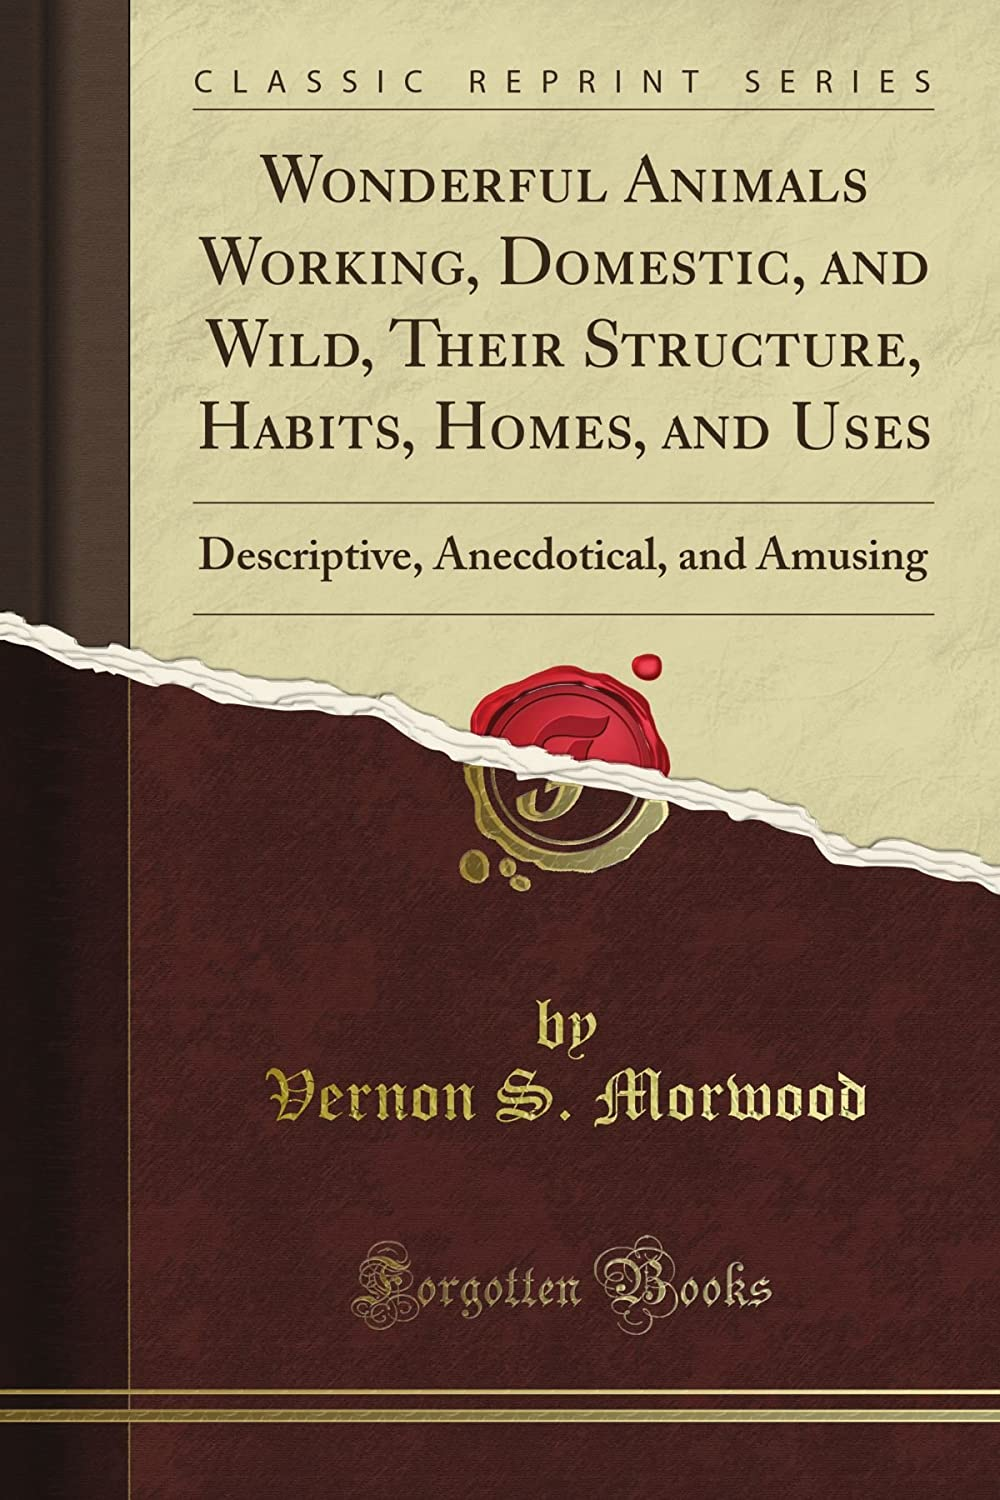 Wonderful Animals Working, Domestic, and Wild, Their Structure, Habits, Homes, and Uses: Descriptive, Anecdotical, and Amusing (Classic Reprint)